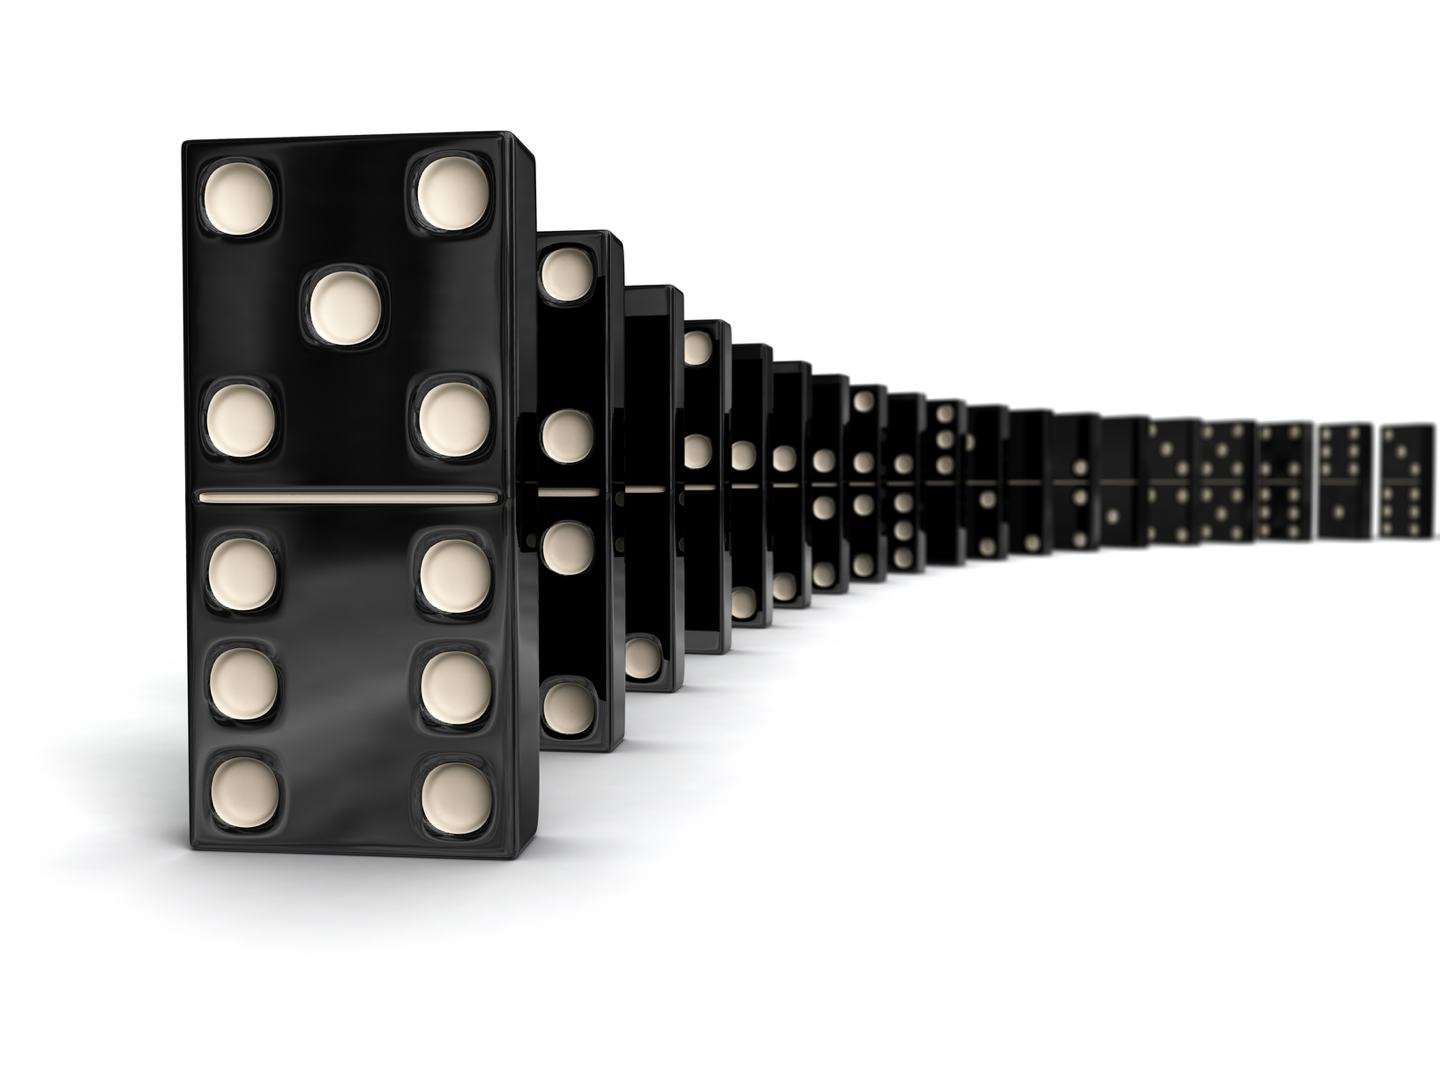 Dominoes Falling Wallpaper 301 Moved Permanently